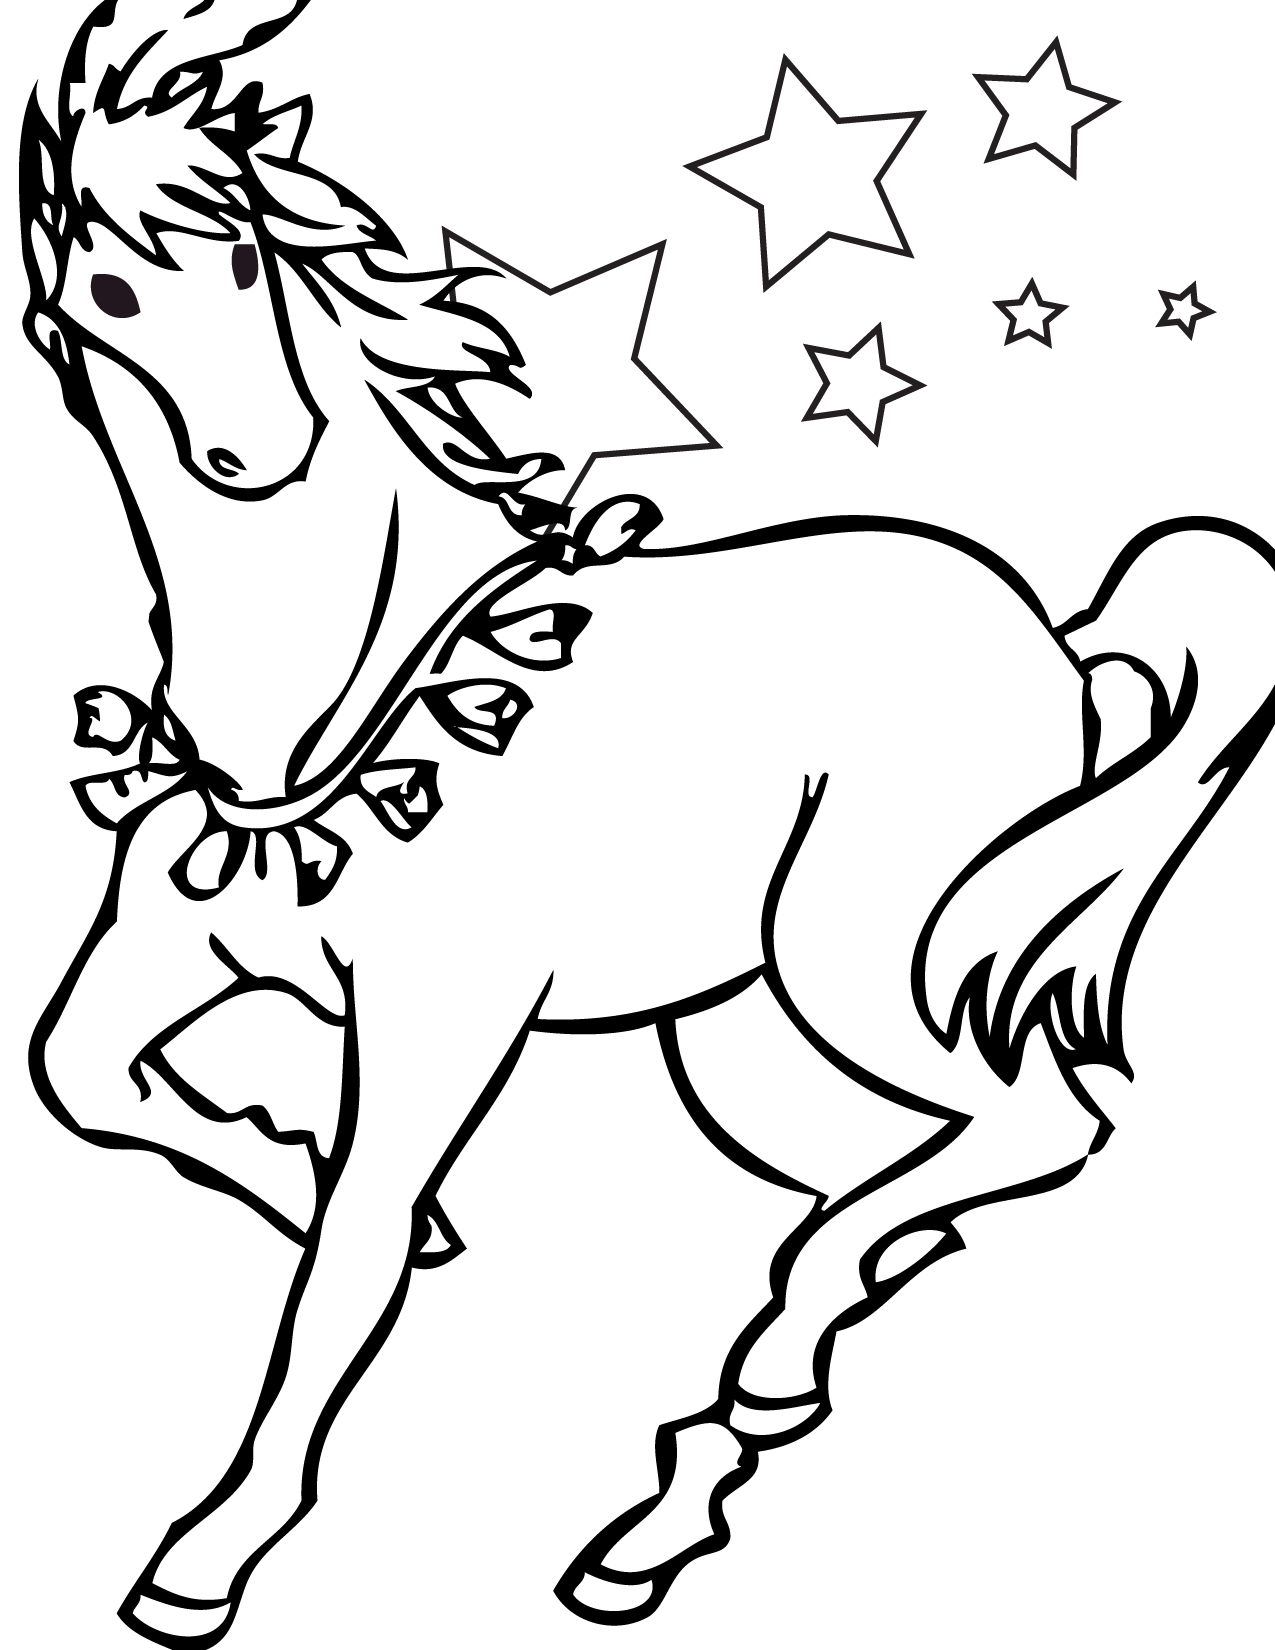 kids pony coloring pages - photo#35